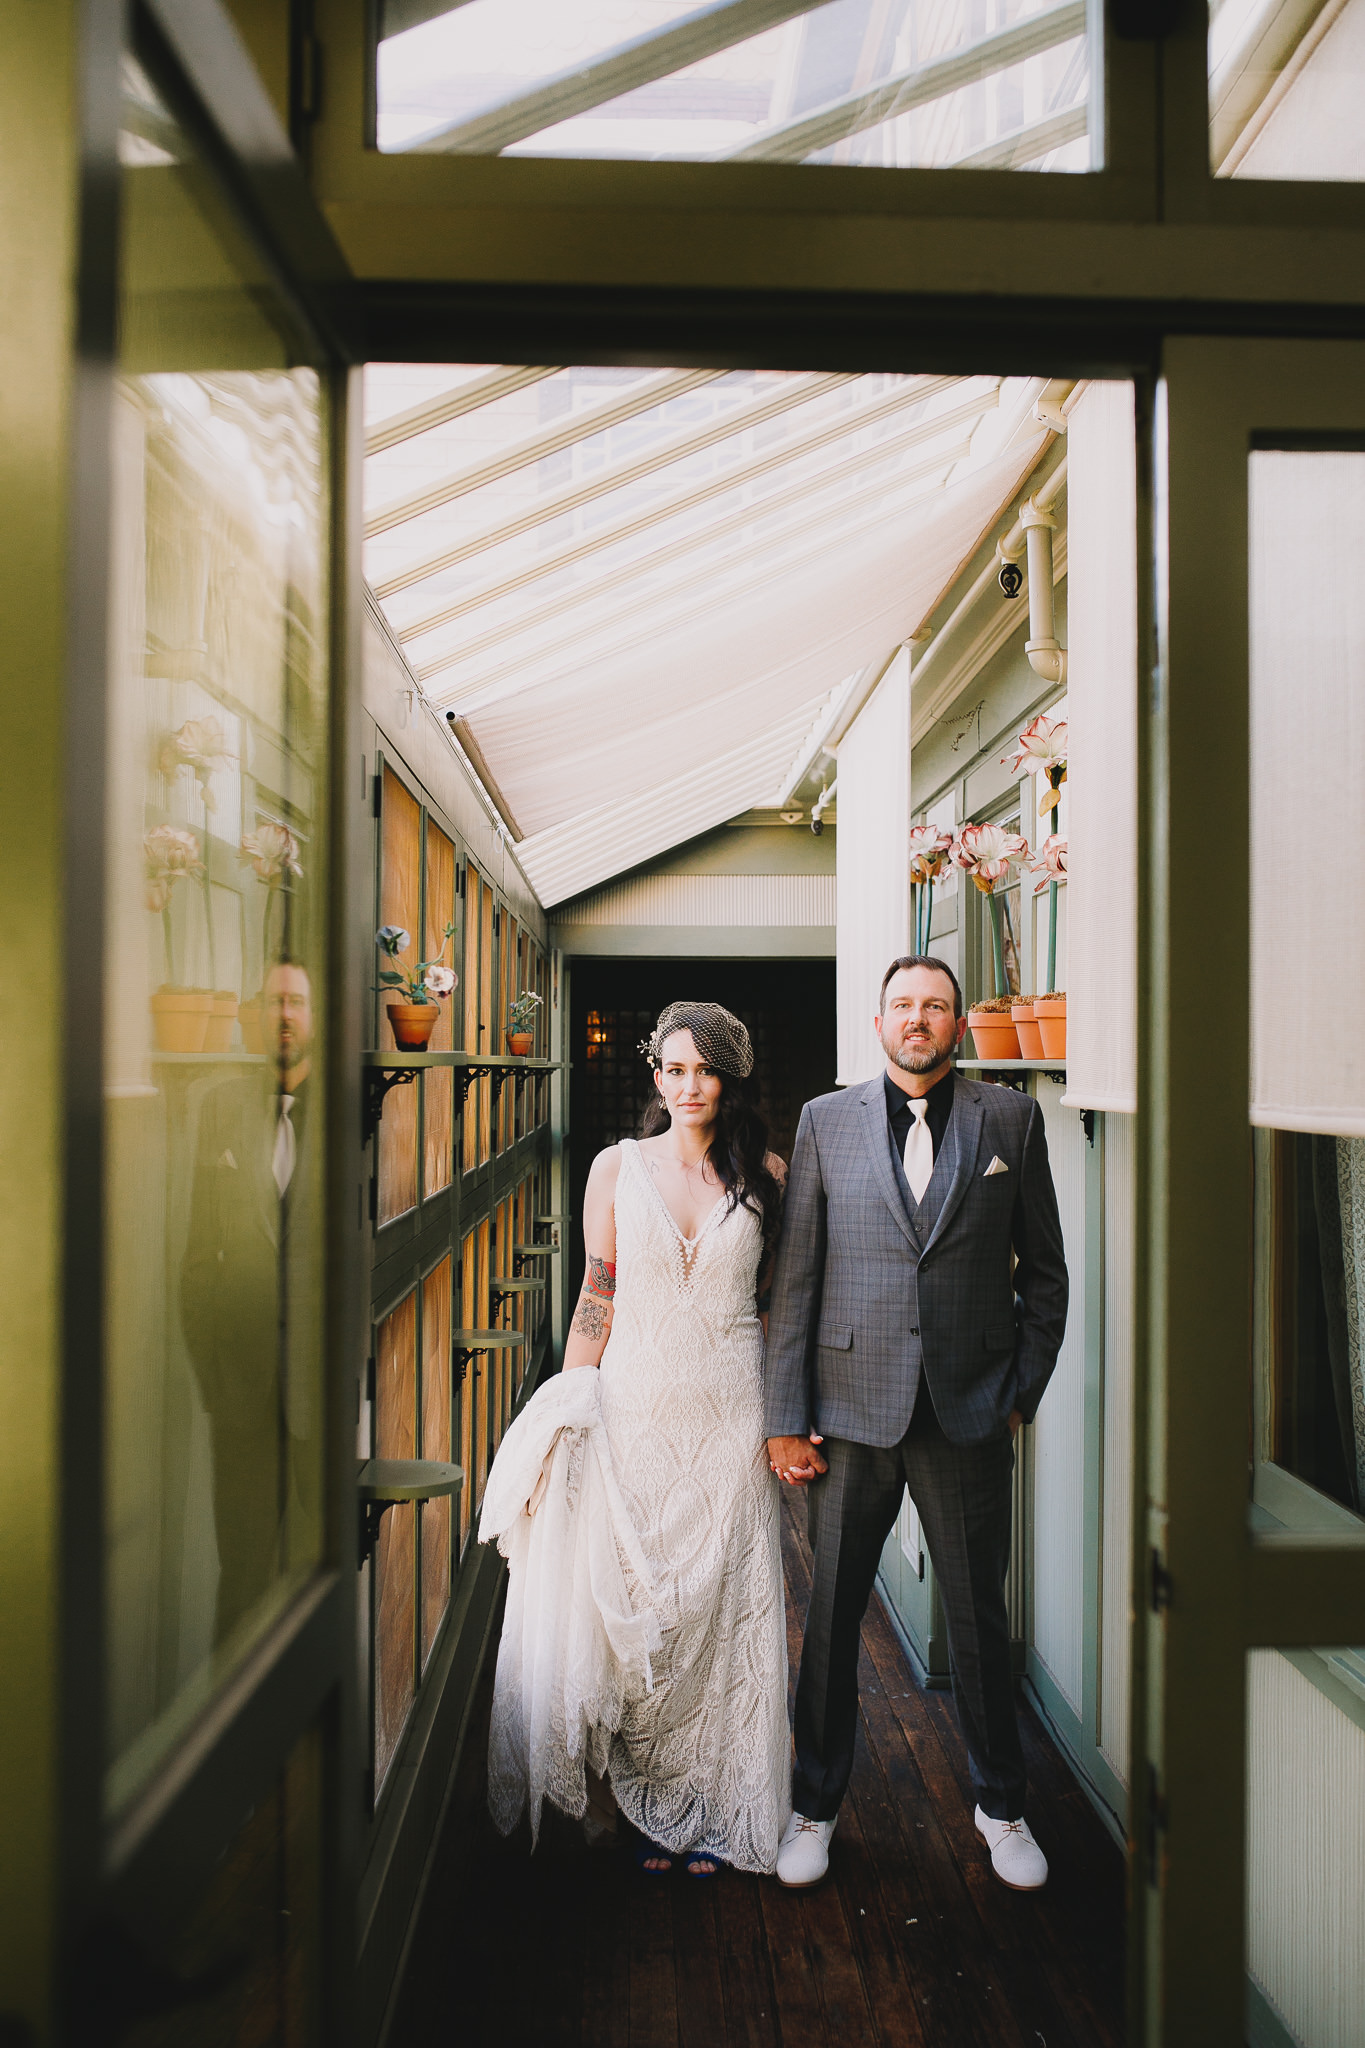 Archer Inspired Photography Sara and Aaron Winchester Mystery House NorCal San Jose California Wedding Photographer-299.jpg